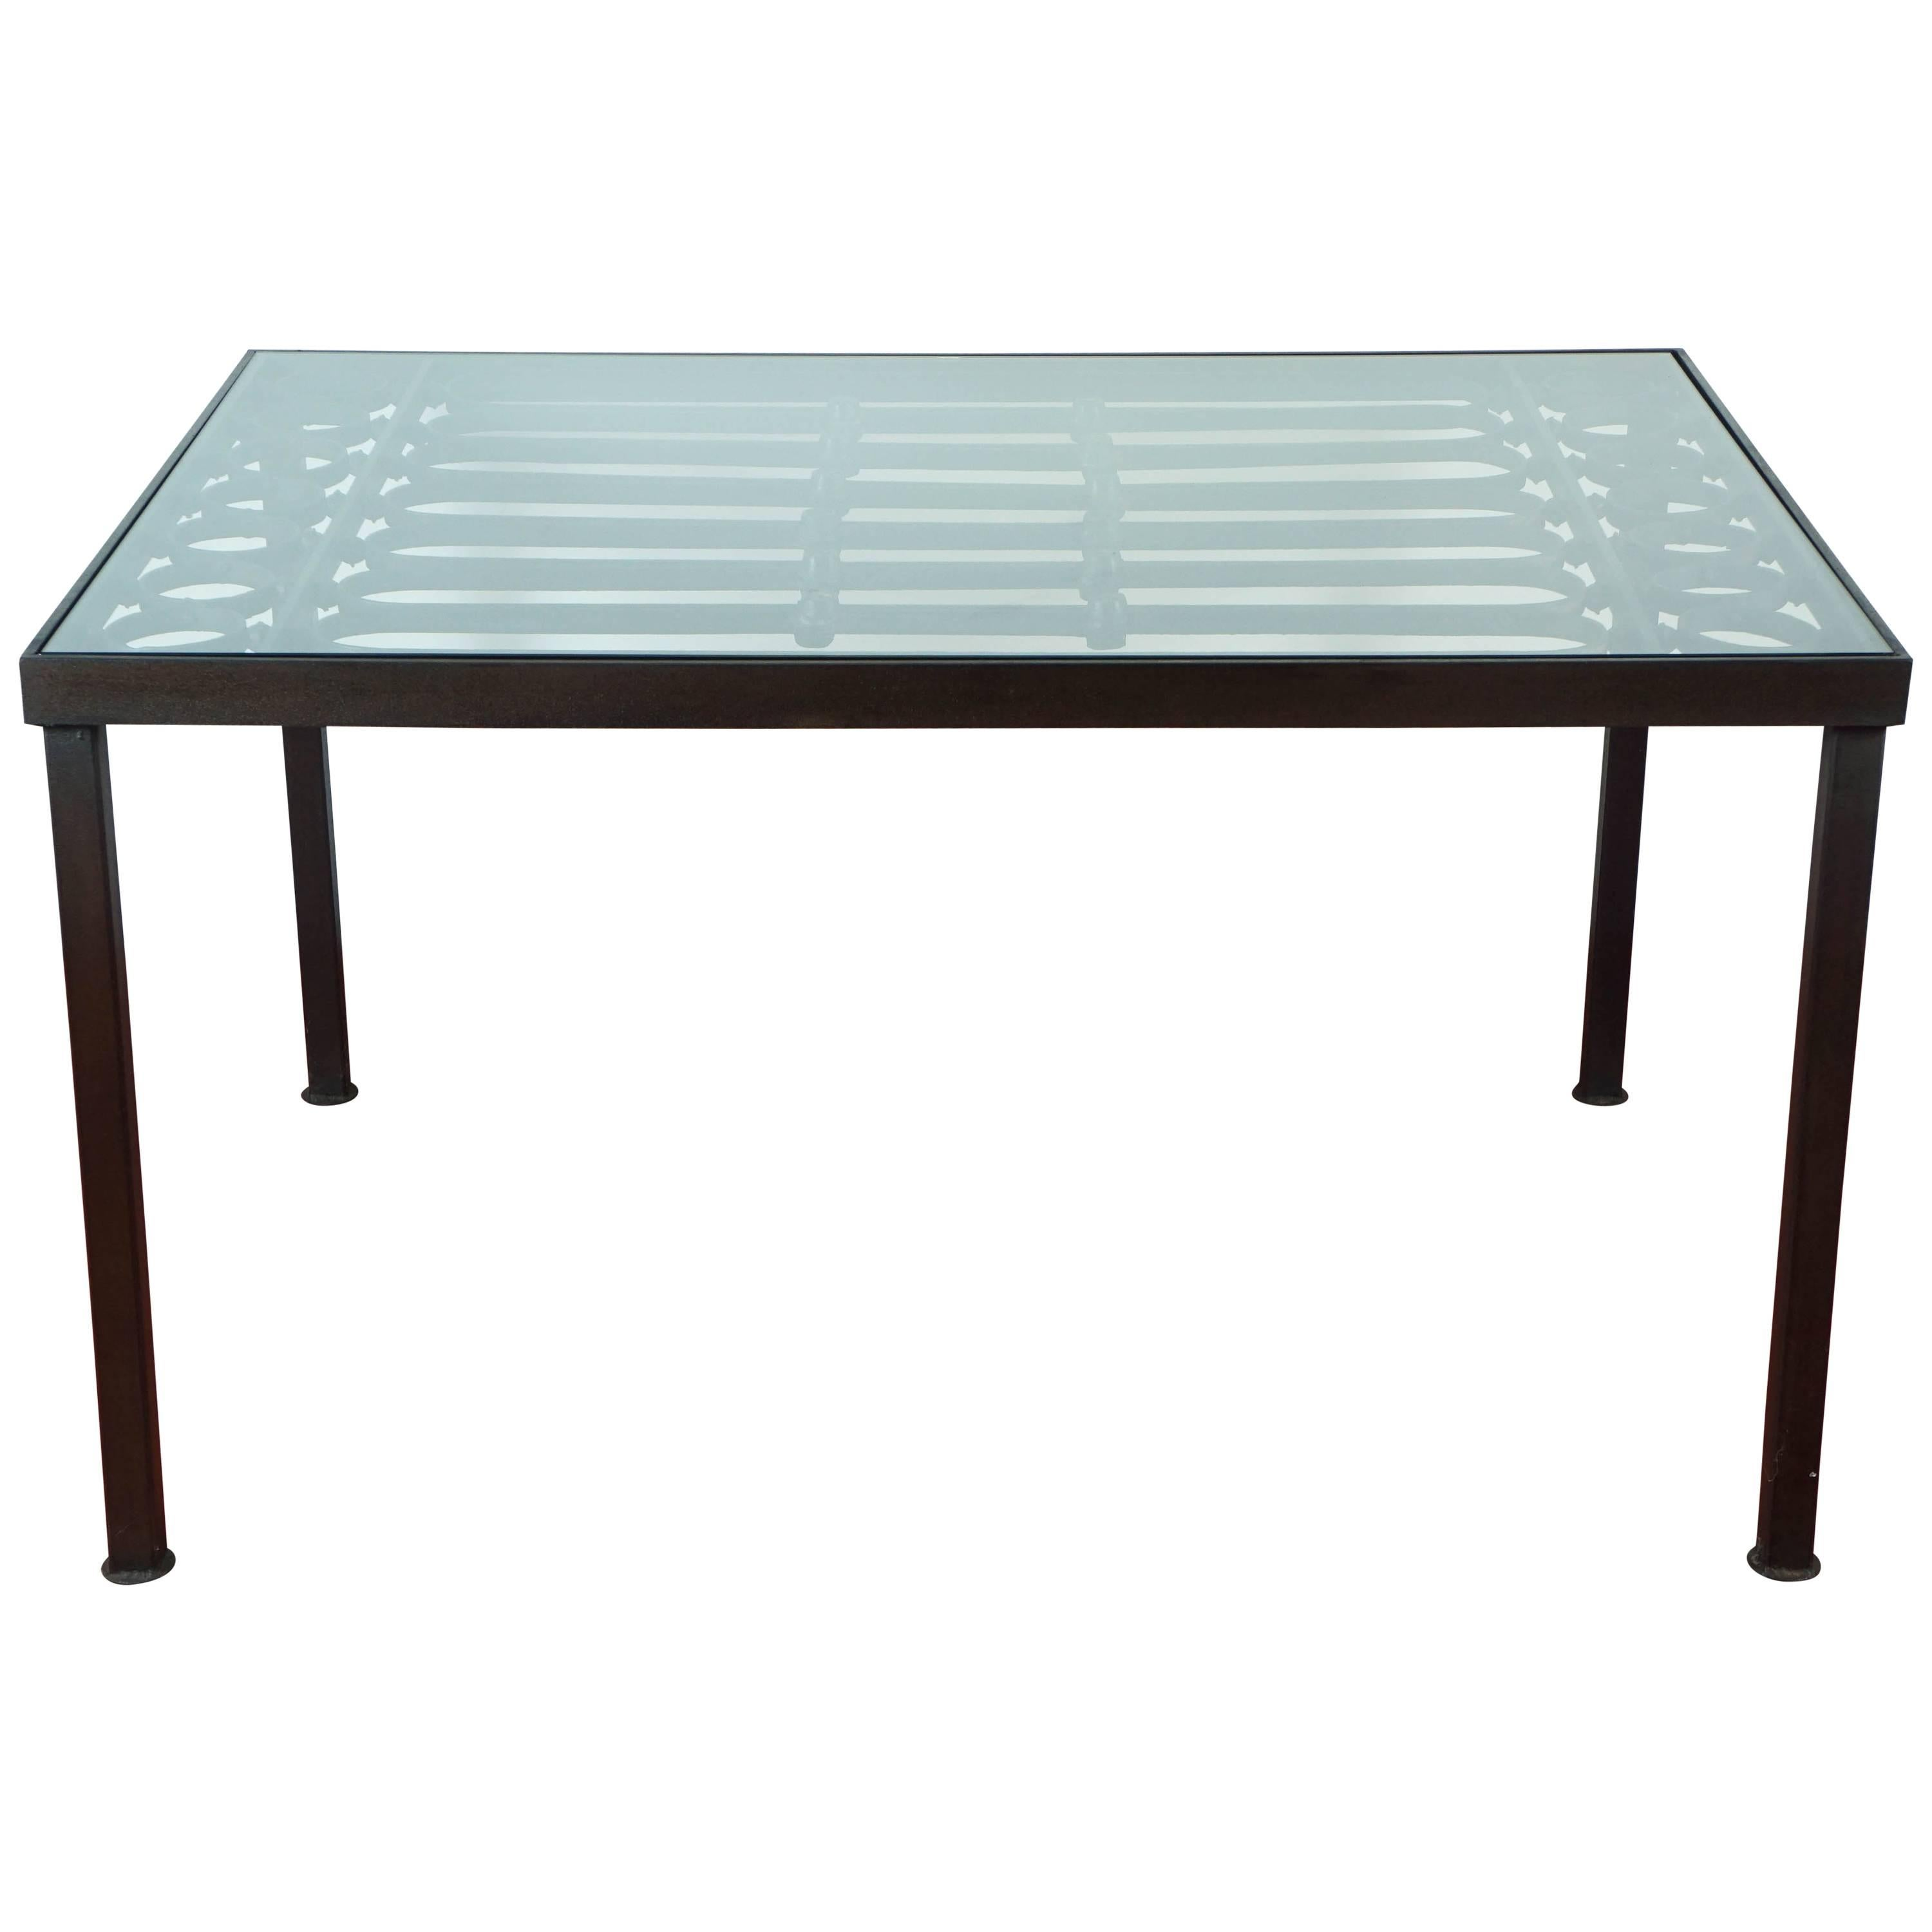 Wrought Iron and Glass Indoor/Outdoor Dining Table